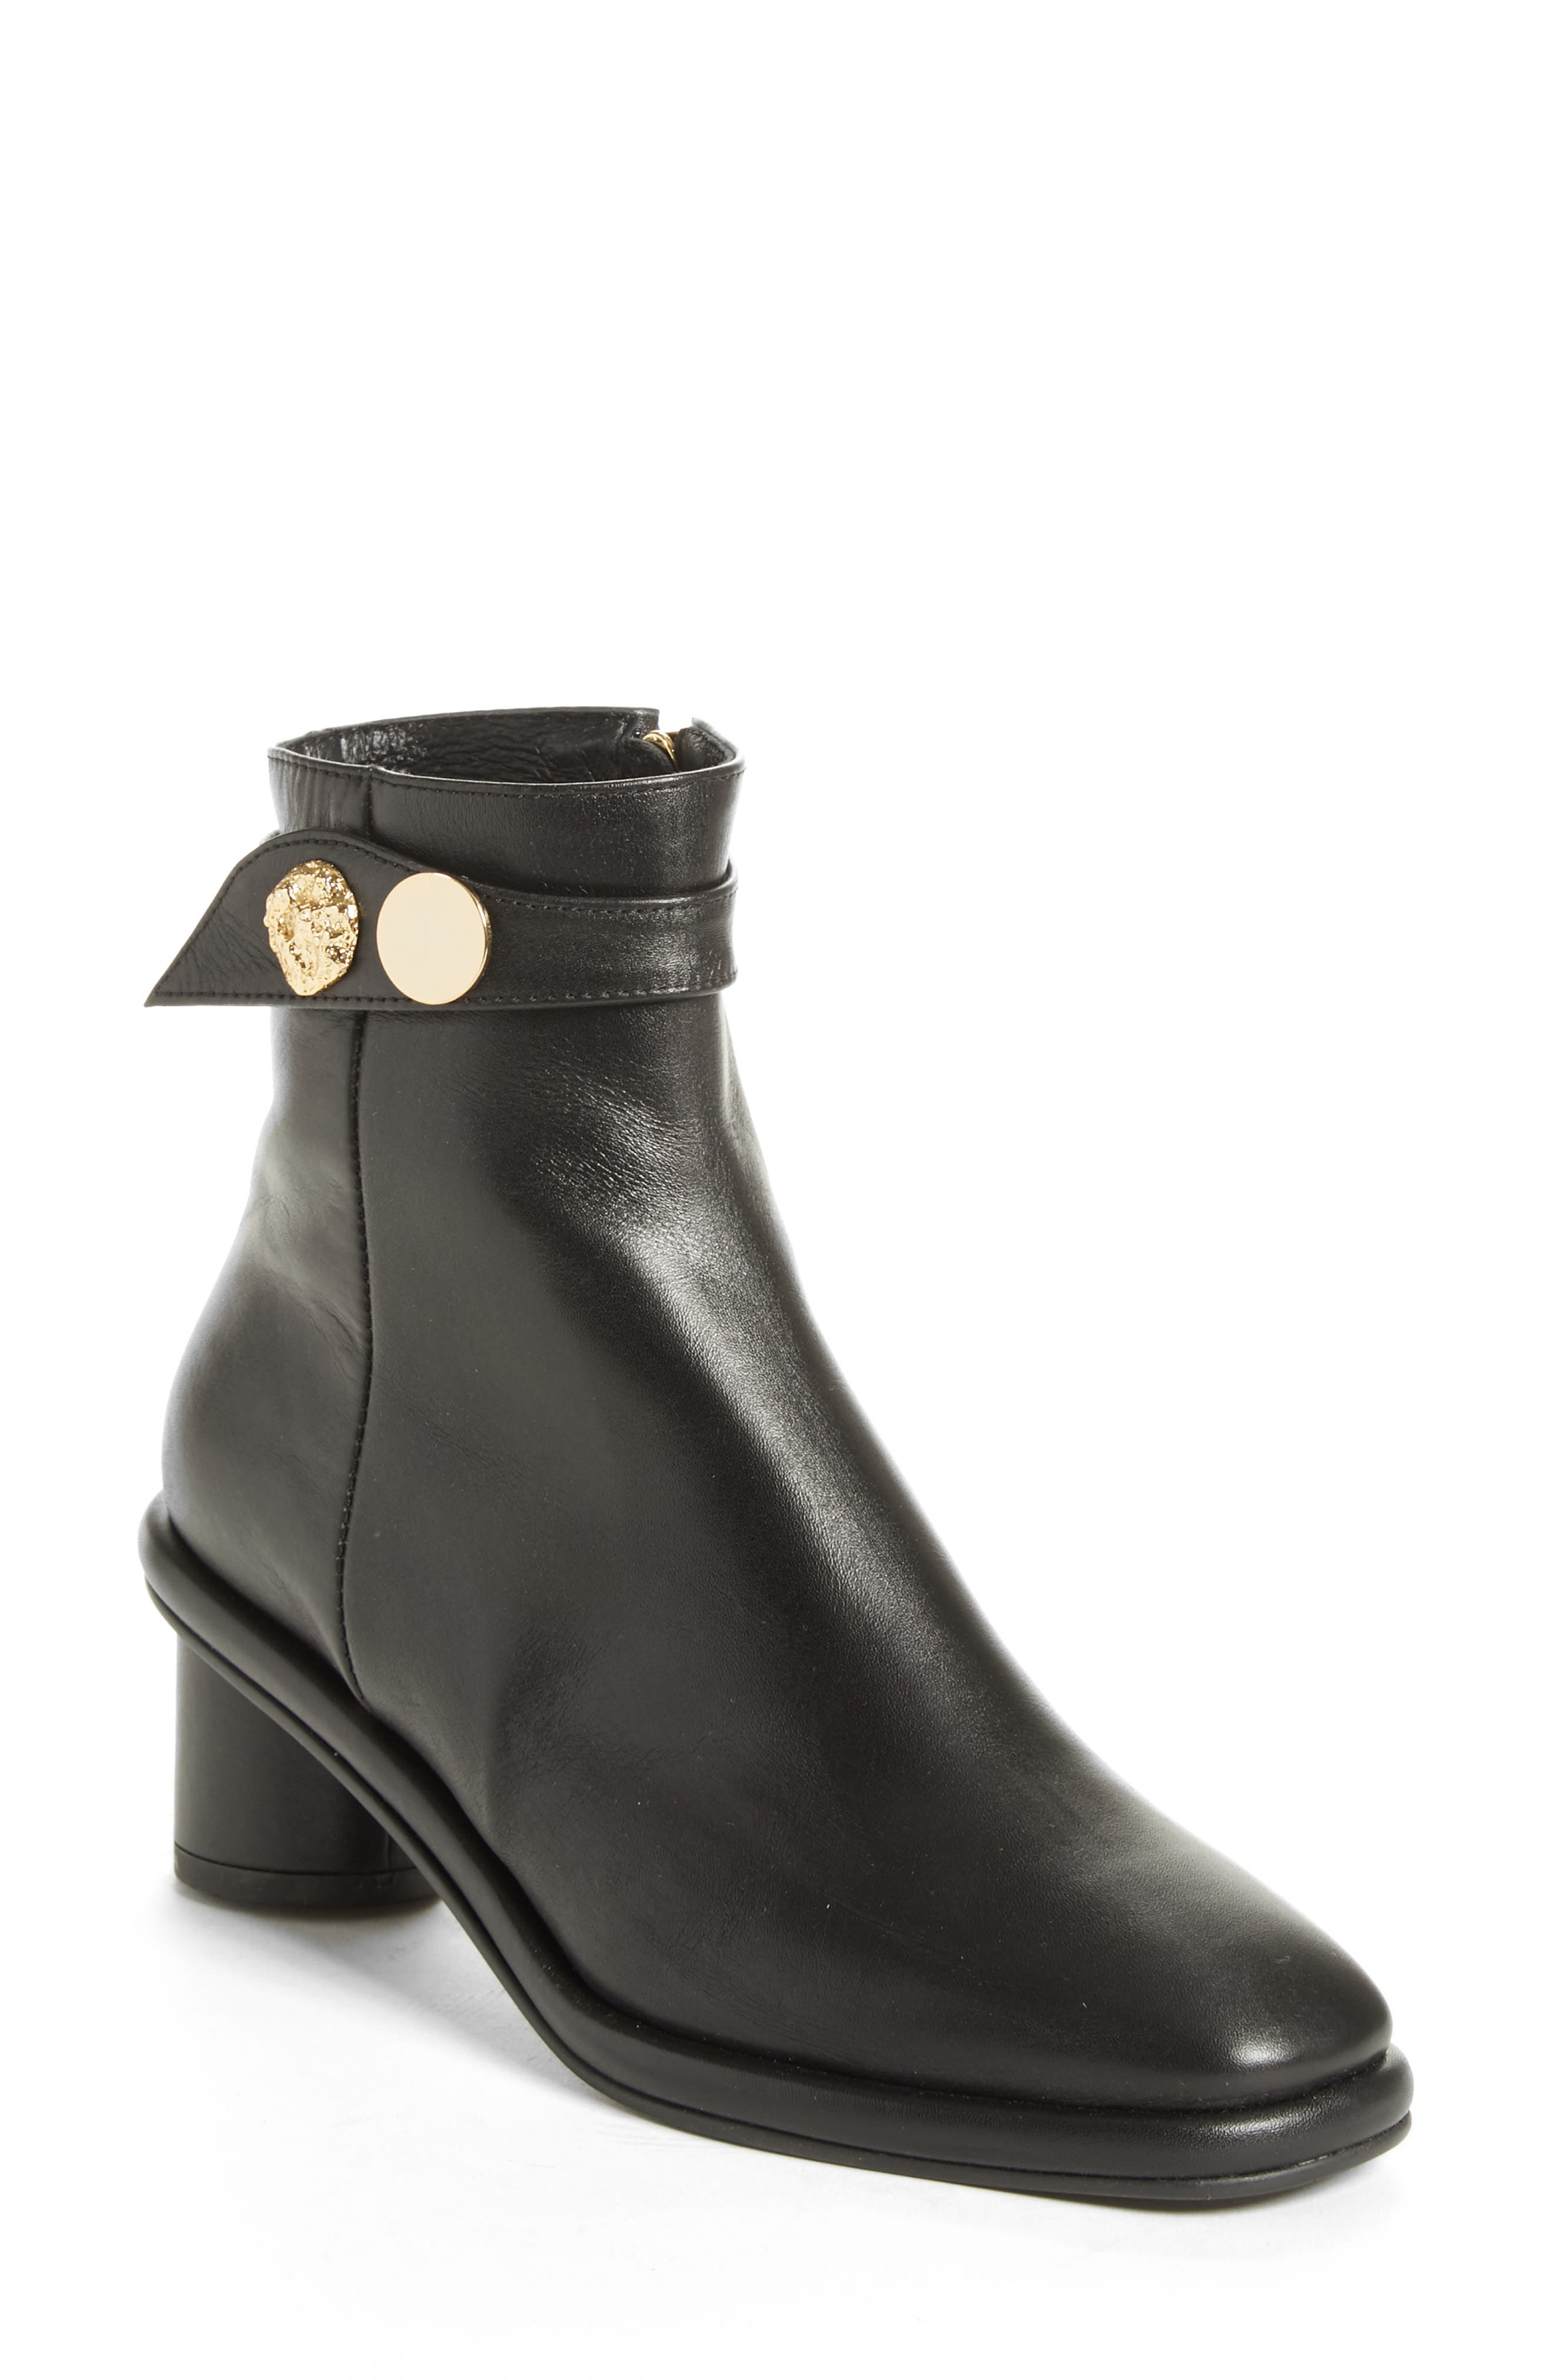 Gold Hardware Ankle Boot,                             Main thumbnail 1, color,                             BLACK